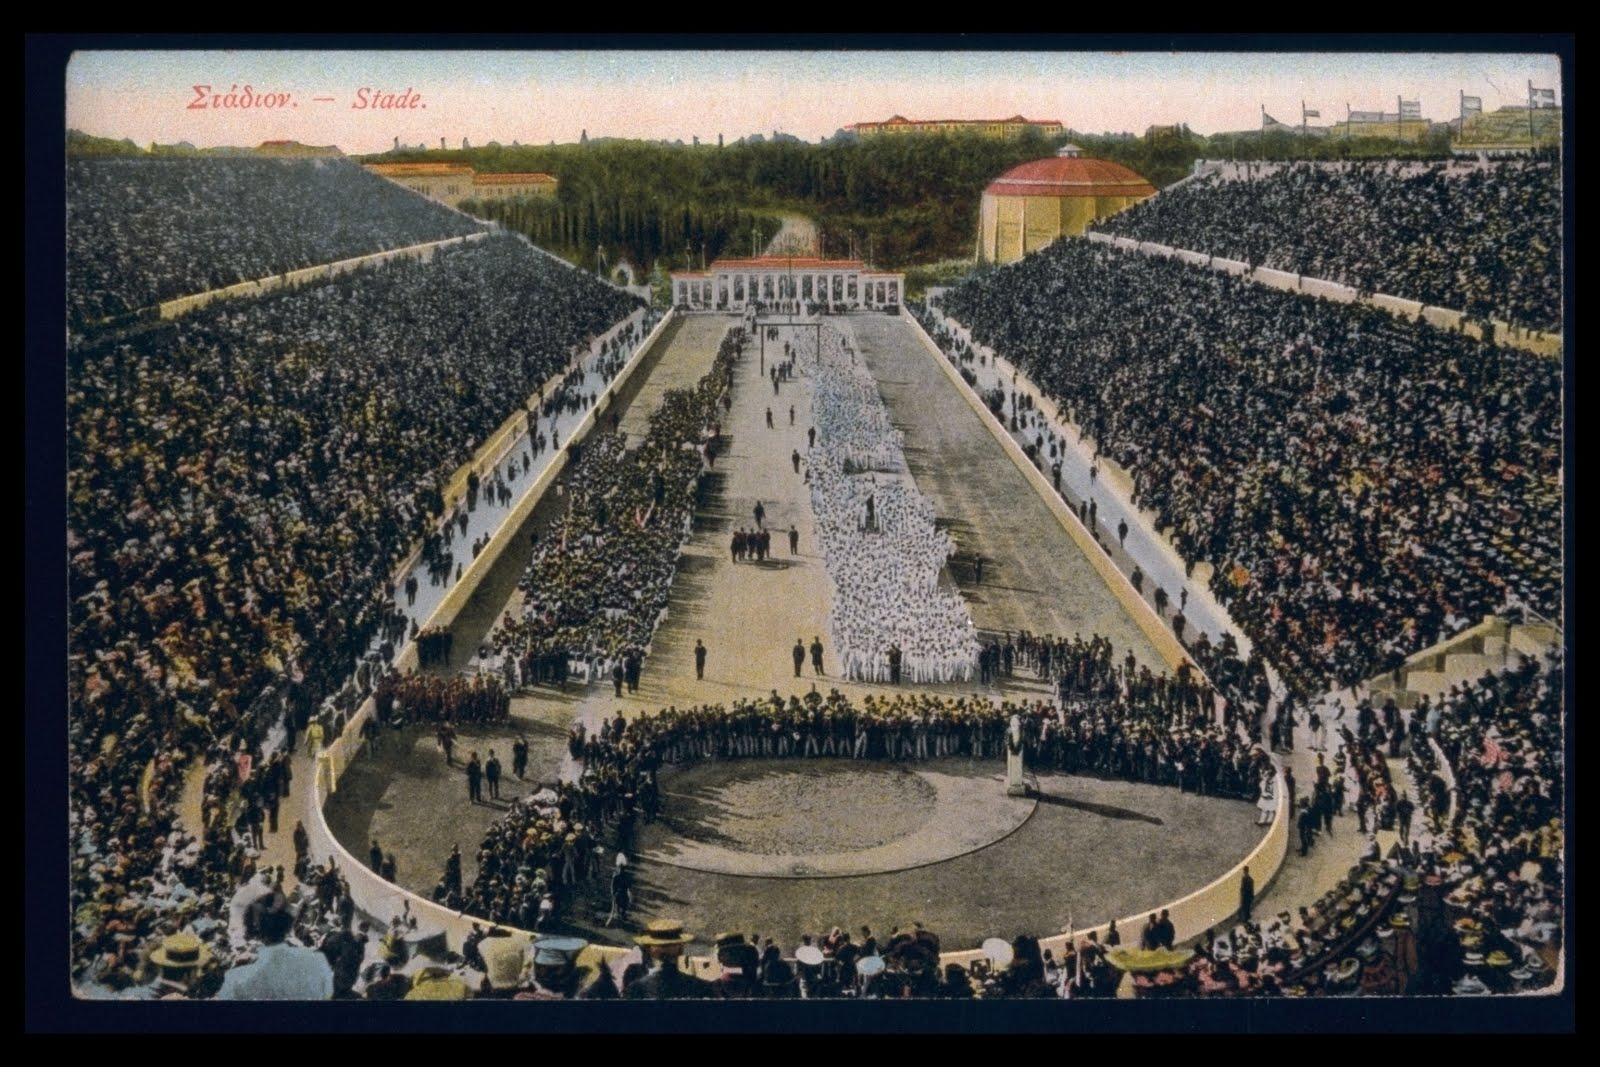 games of the ancient olympics The olympic games, which originated in ancient greece as many as 3,000 years ago, were revived in the late 19th century and have become the world's preeminent sporting competition.